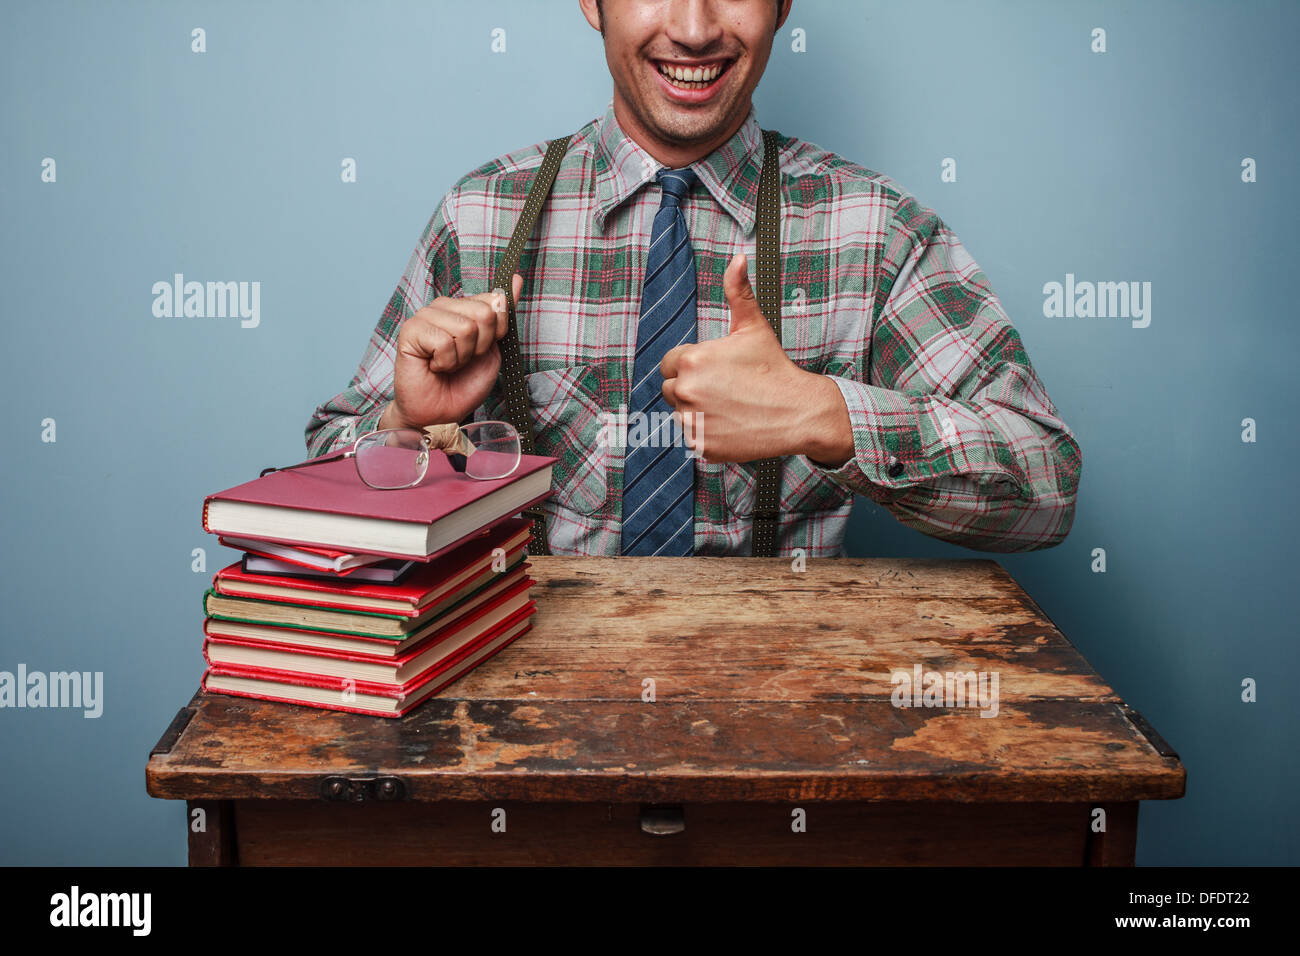 Young nerd giving thumbs up as he is sitting next to a stack of books - Stock Image